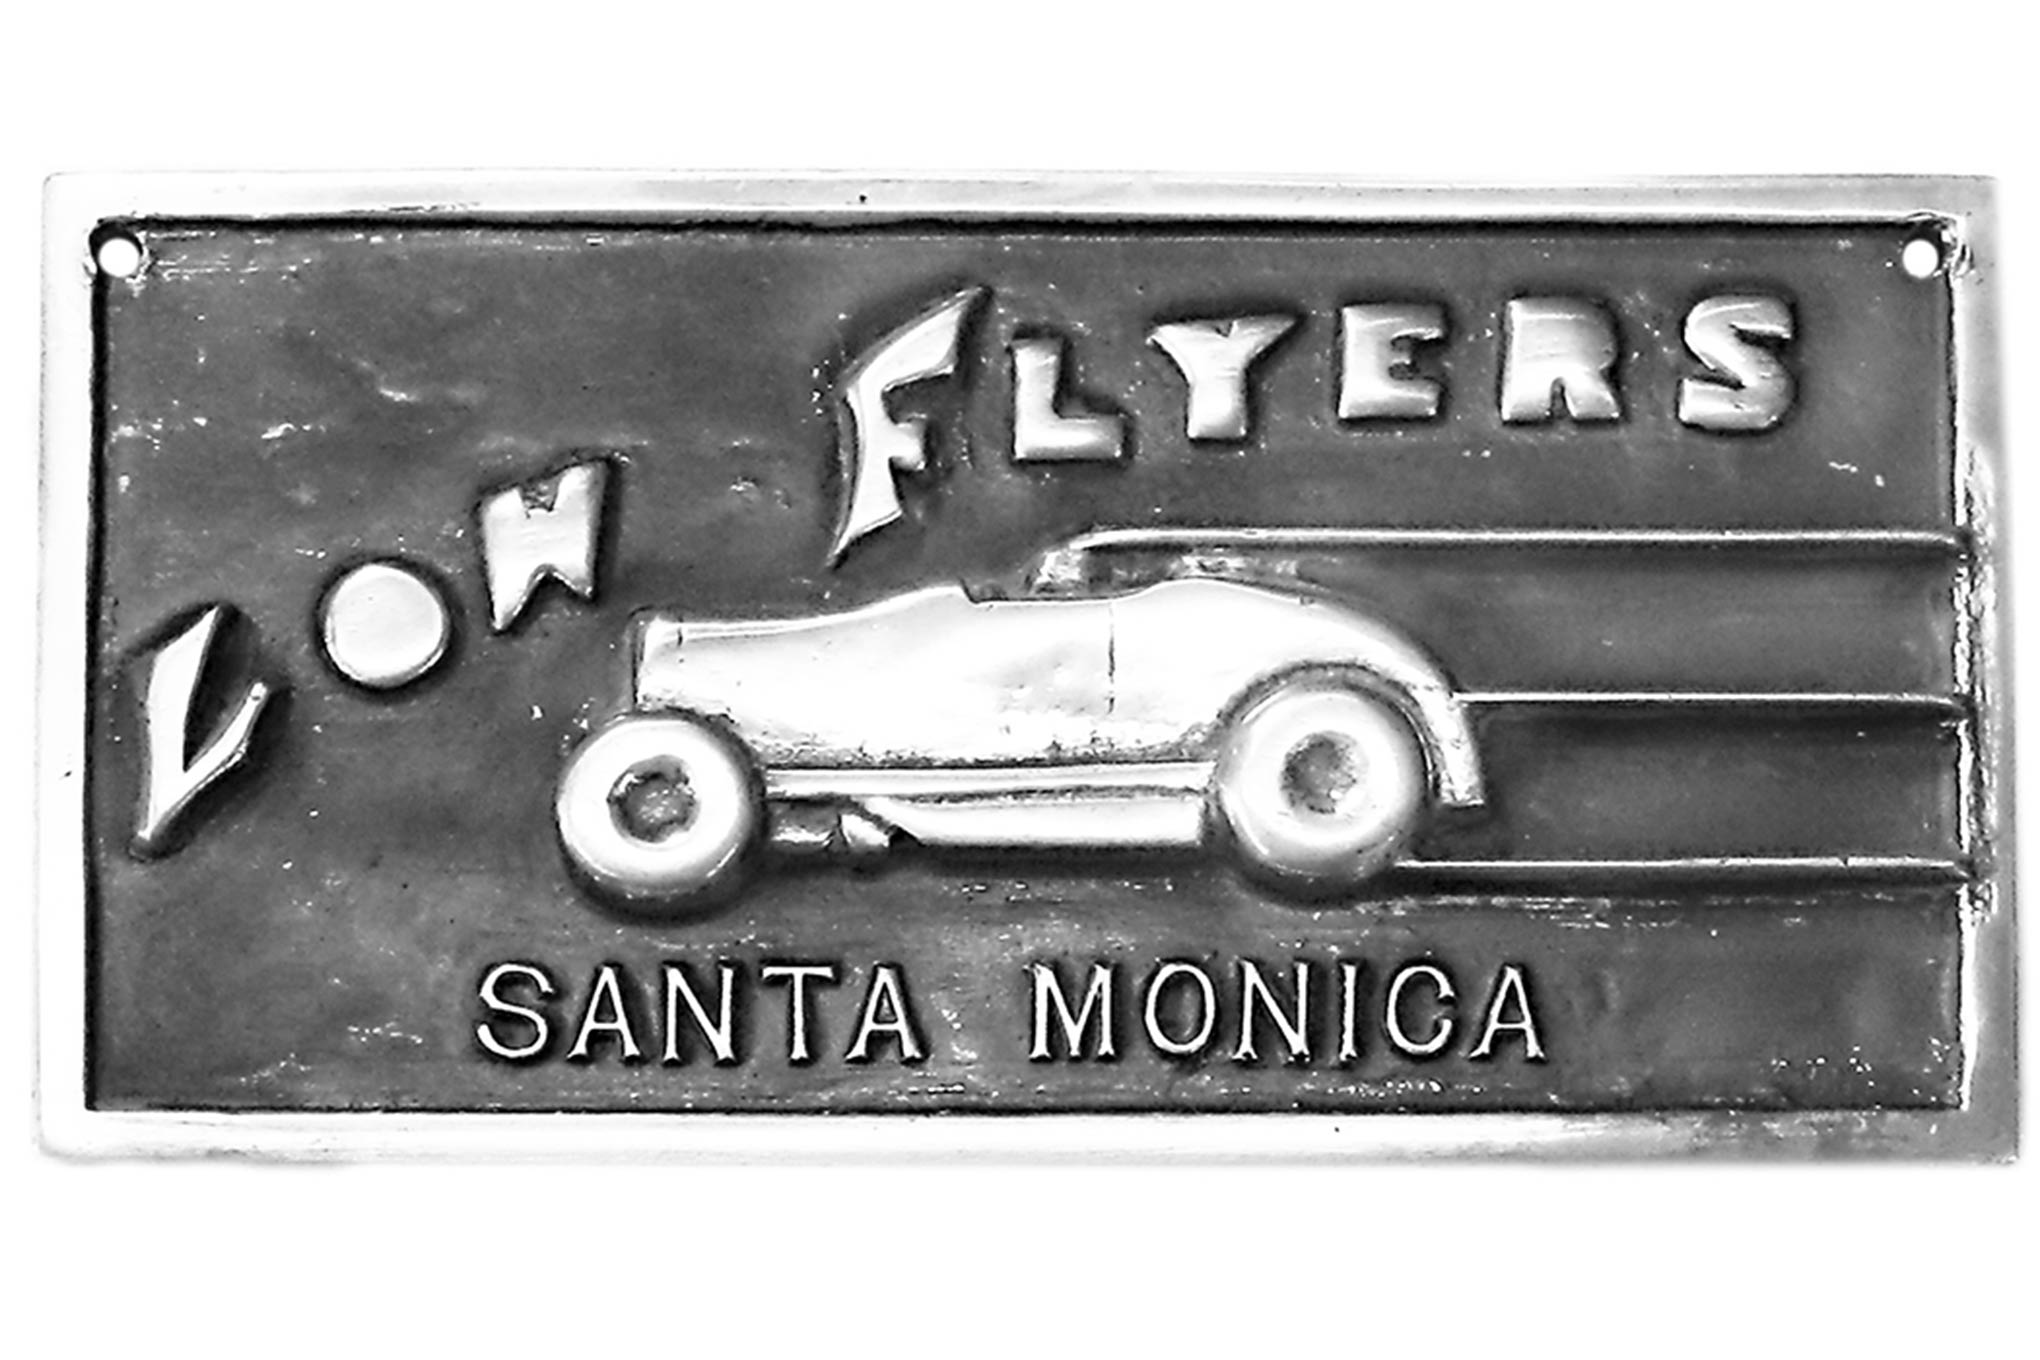 Dick was a member, early 20s at the time, of the Low Flyers club which carried some of the iconic names in hot rodding on its roster: Phil Remington (think Dan Gurney's All American Racers), Stu Hilborn (yes, that Hilborn!) to name but two…and, of course, Dick himself.